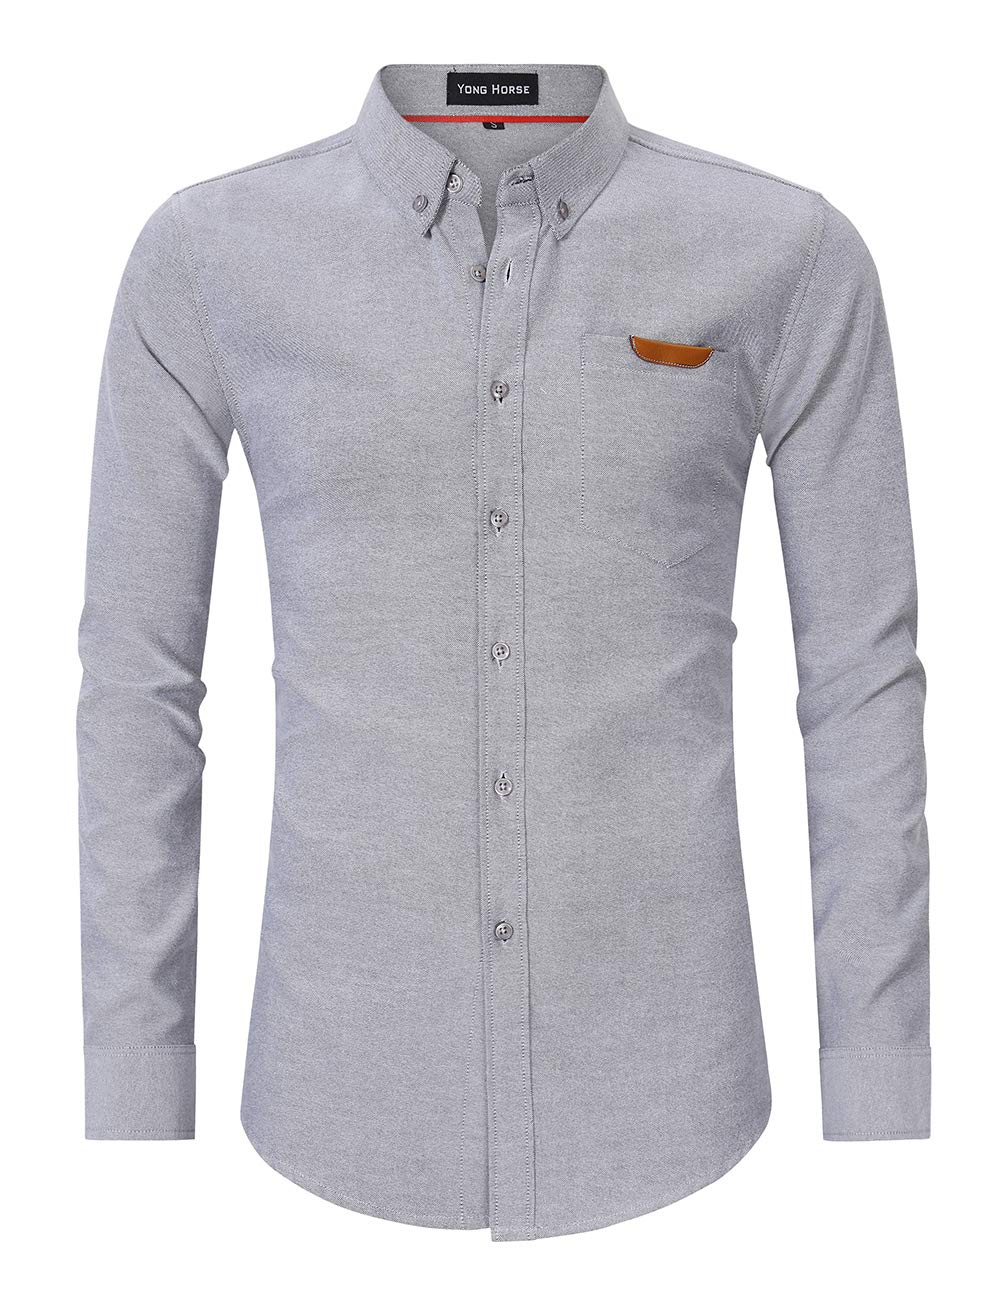 Men\'s Casual Slim Fit Button Down Dress Shirt Long Sleeve Solid Oxford Shirts (XX-Large, Grey)